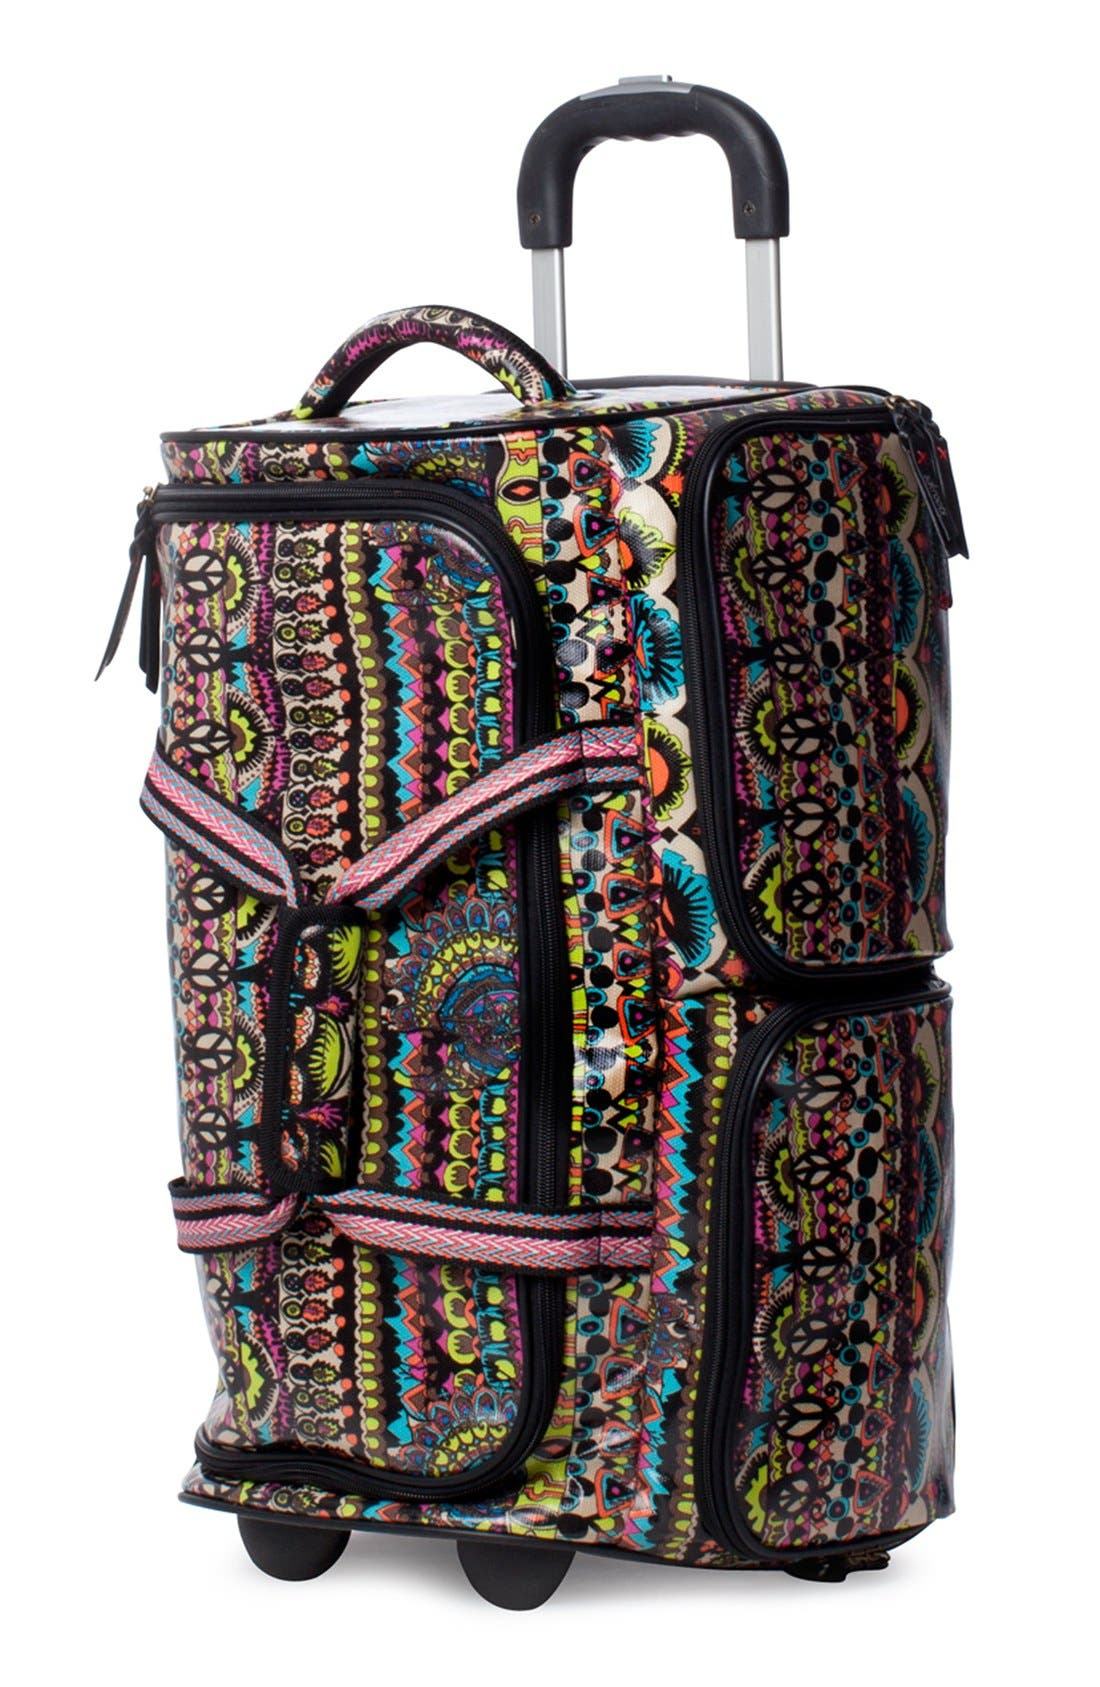 Alternate Image 1 Selected - Sakroots 'Artist Circle' Rolling Carry-On Duffel Bag (23 Inch)